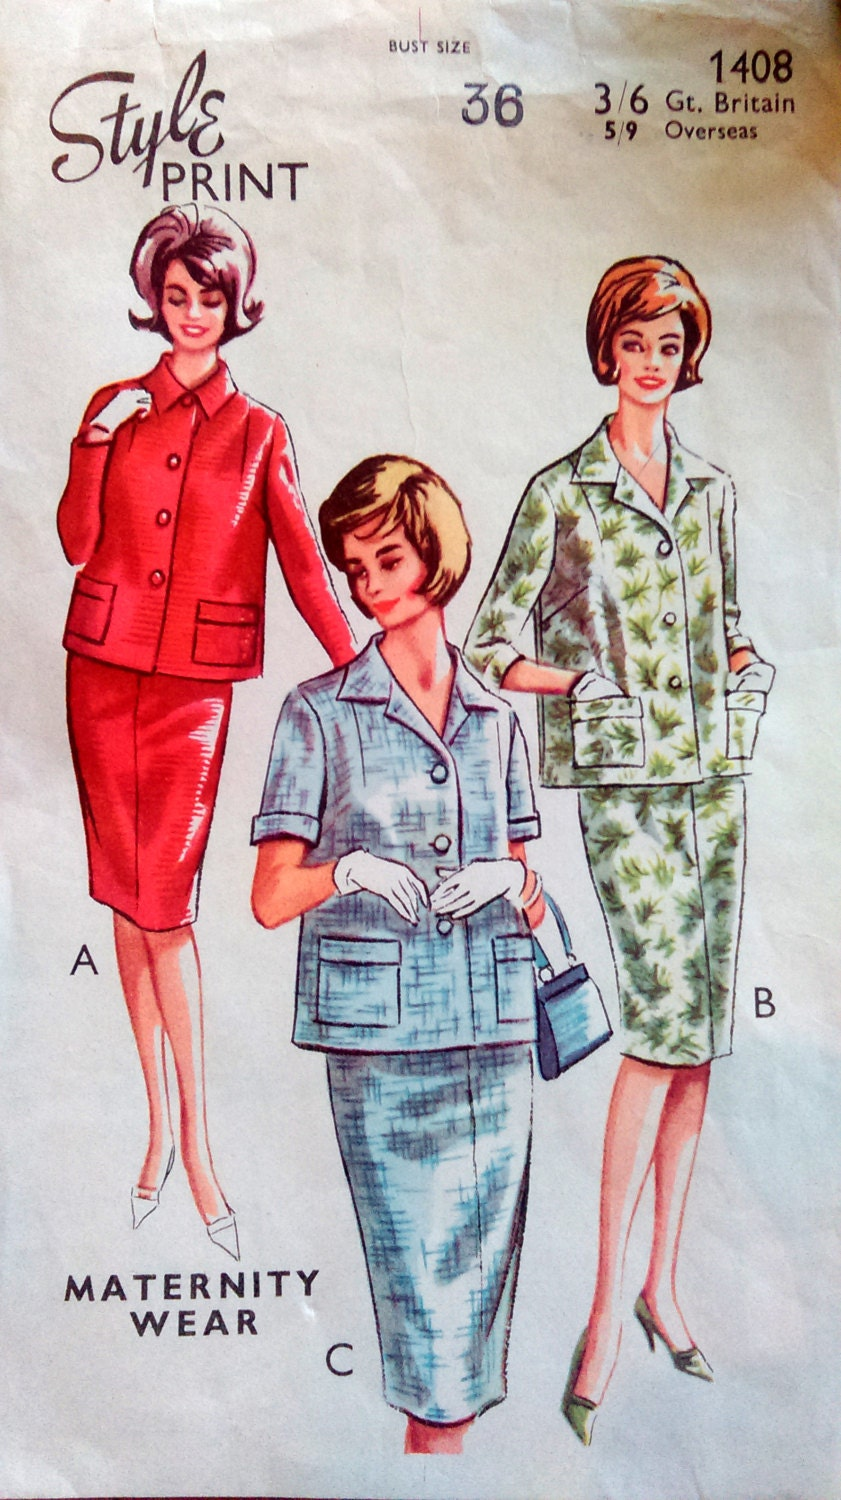 Vintage maternity sewing pattern style dress pattern 1408 60s shift dress suit pattern for women sewing sold by strawberryfvintage ombrellifo Choice Image